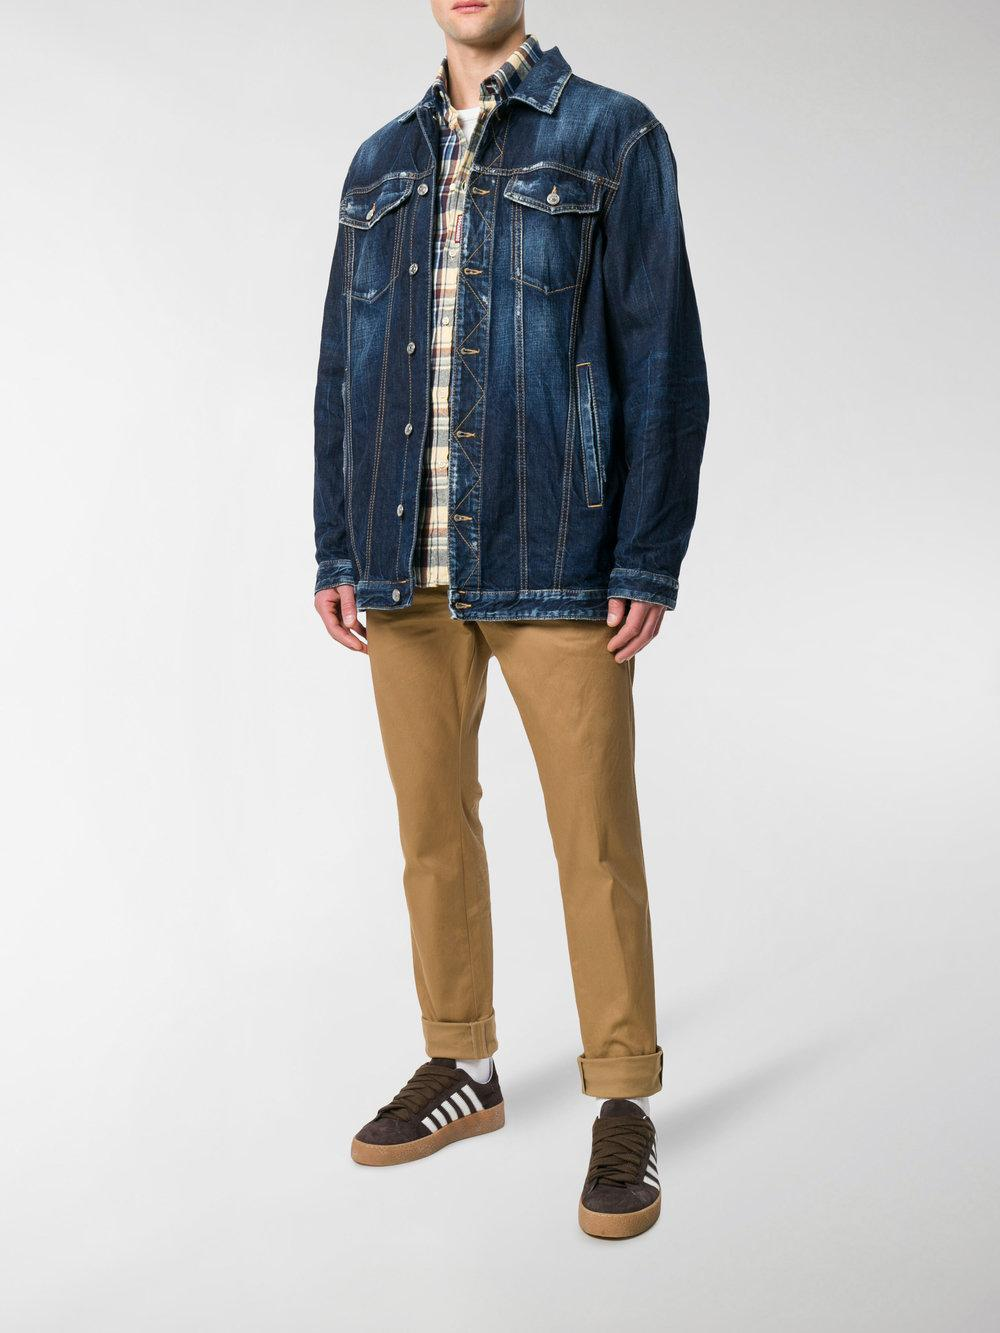 bc3c79cd3fa7b2 DSquared² Oversized Denim Jacket in Blue for Men - Save 51% - Lyst